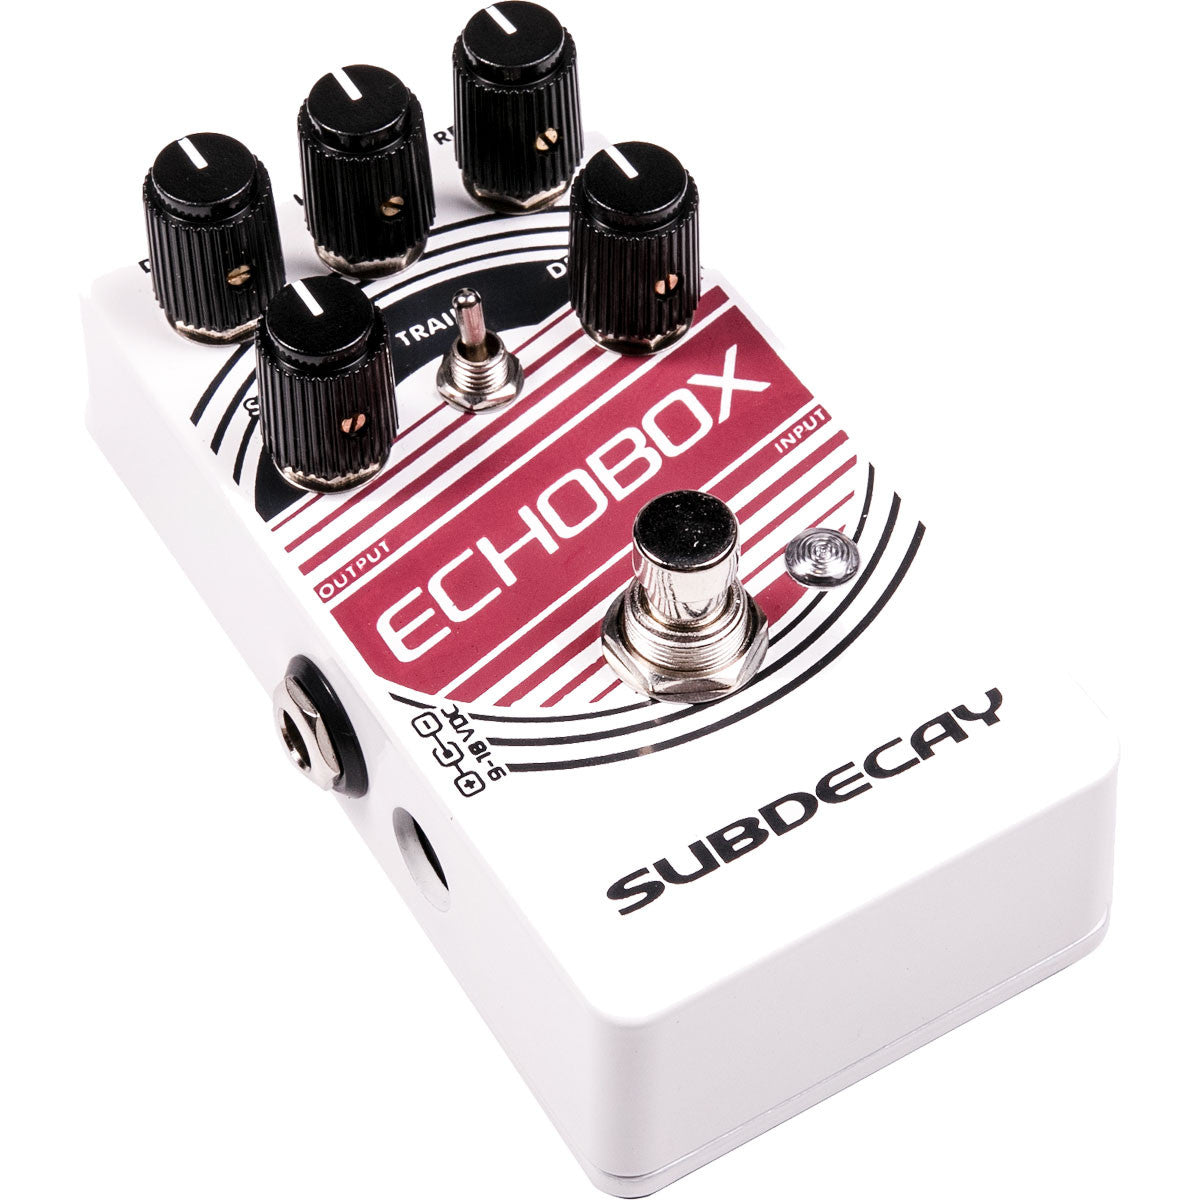 Subdecay Echo Box Modulated Echo | Lucky Fret Music Co.